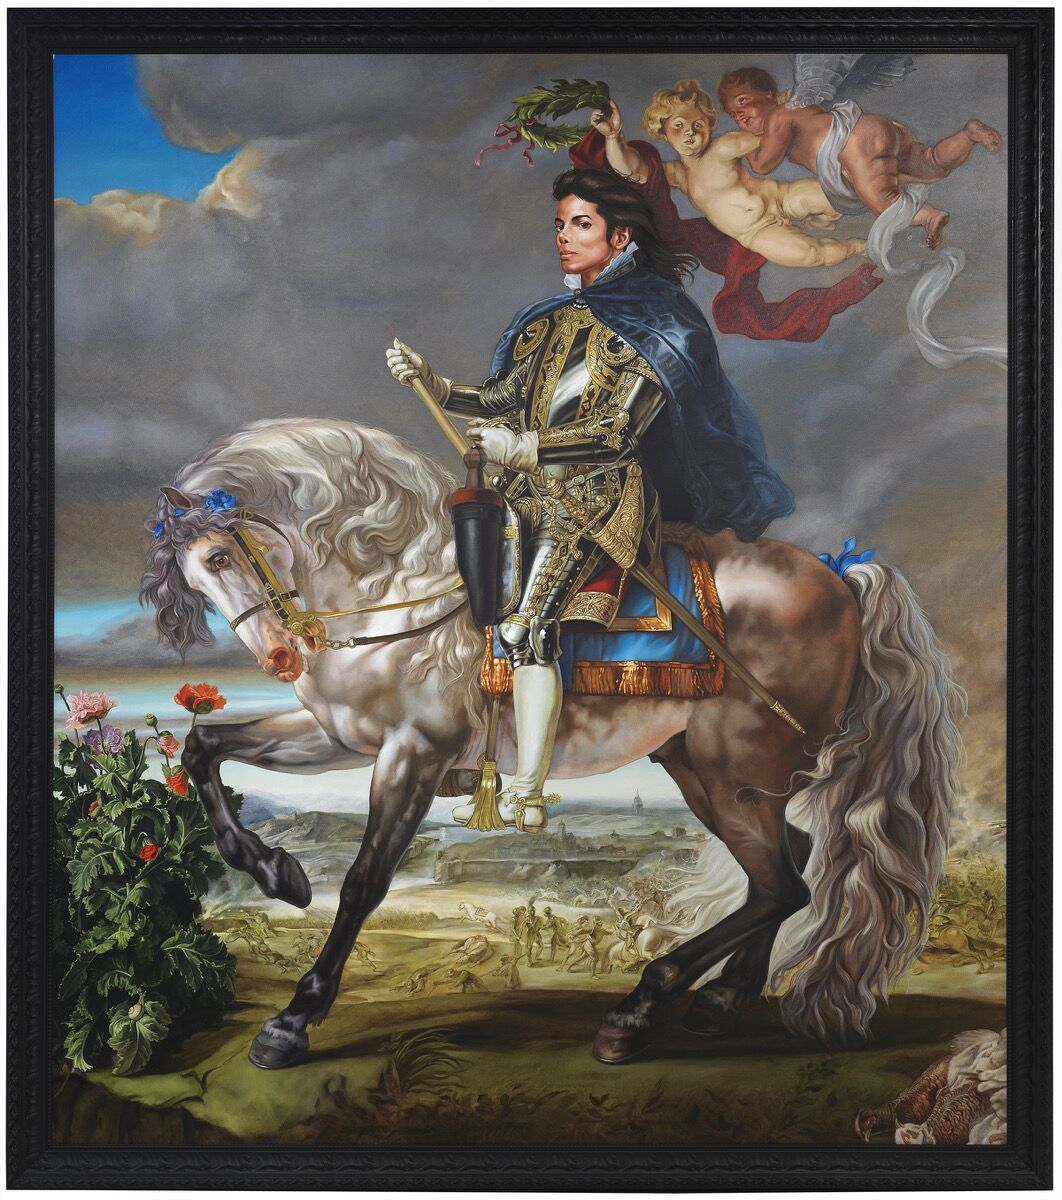 Kehinde Wiley, Equestrian Portrait of King Philip II (Michael Jackson), 2010. © Kehinde Wiley. Photo by Jeurg Iseler. Courtesy of Stephen Friedman Gallery, London and Sean Kelly Gallery, New York.